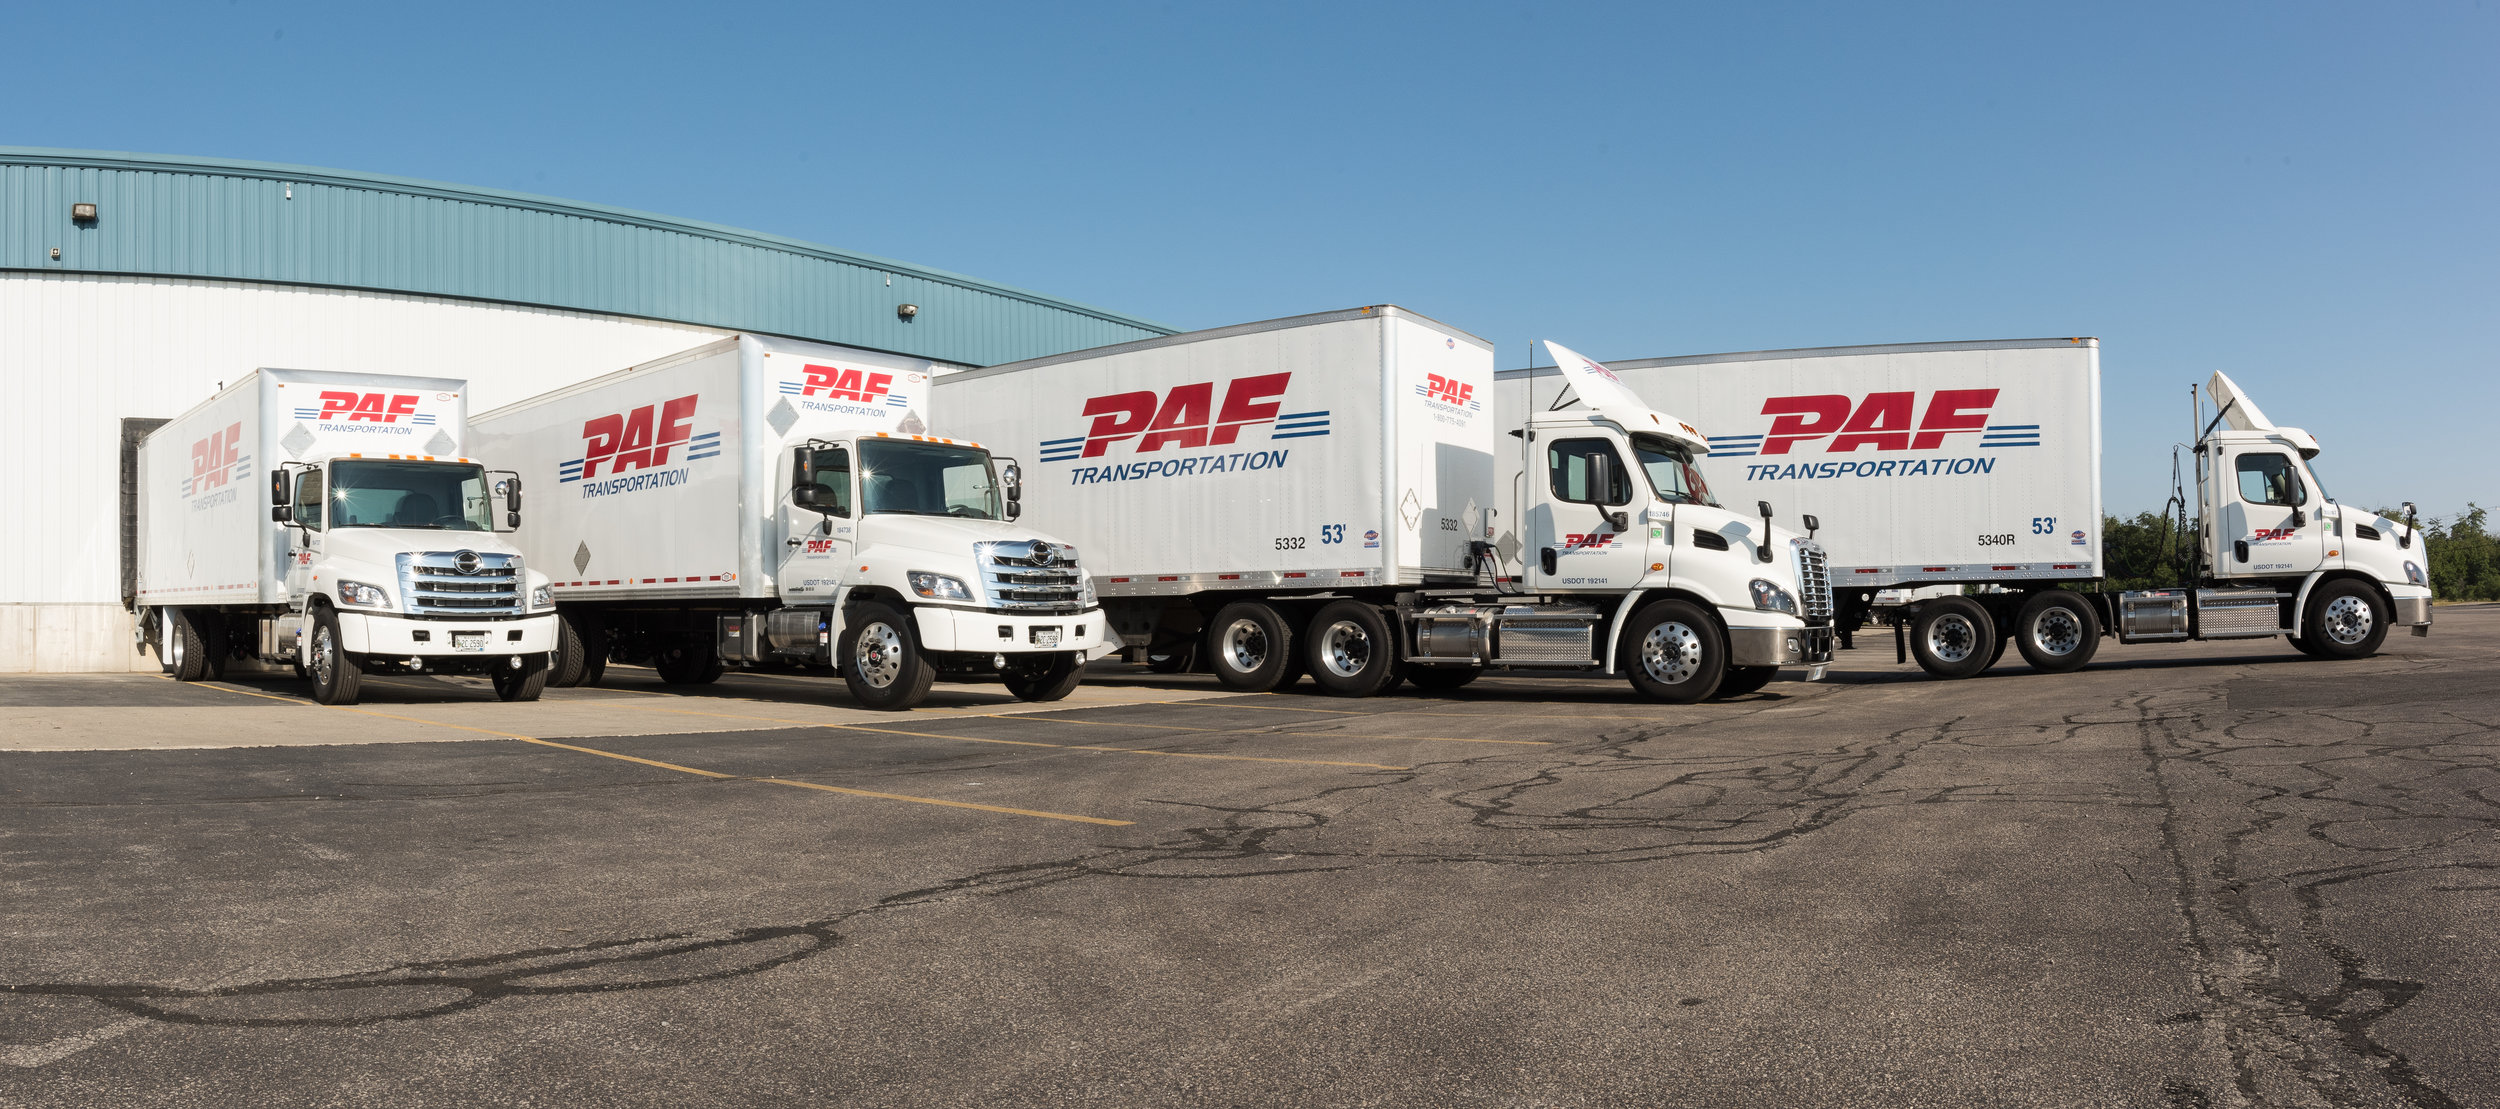 PAF Transportation trucks at loading dock